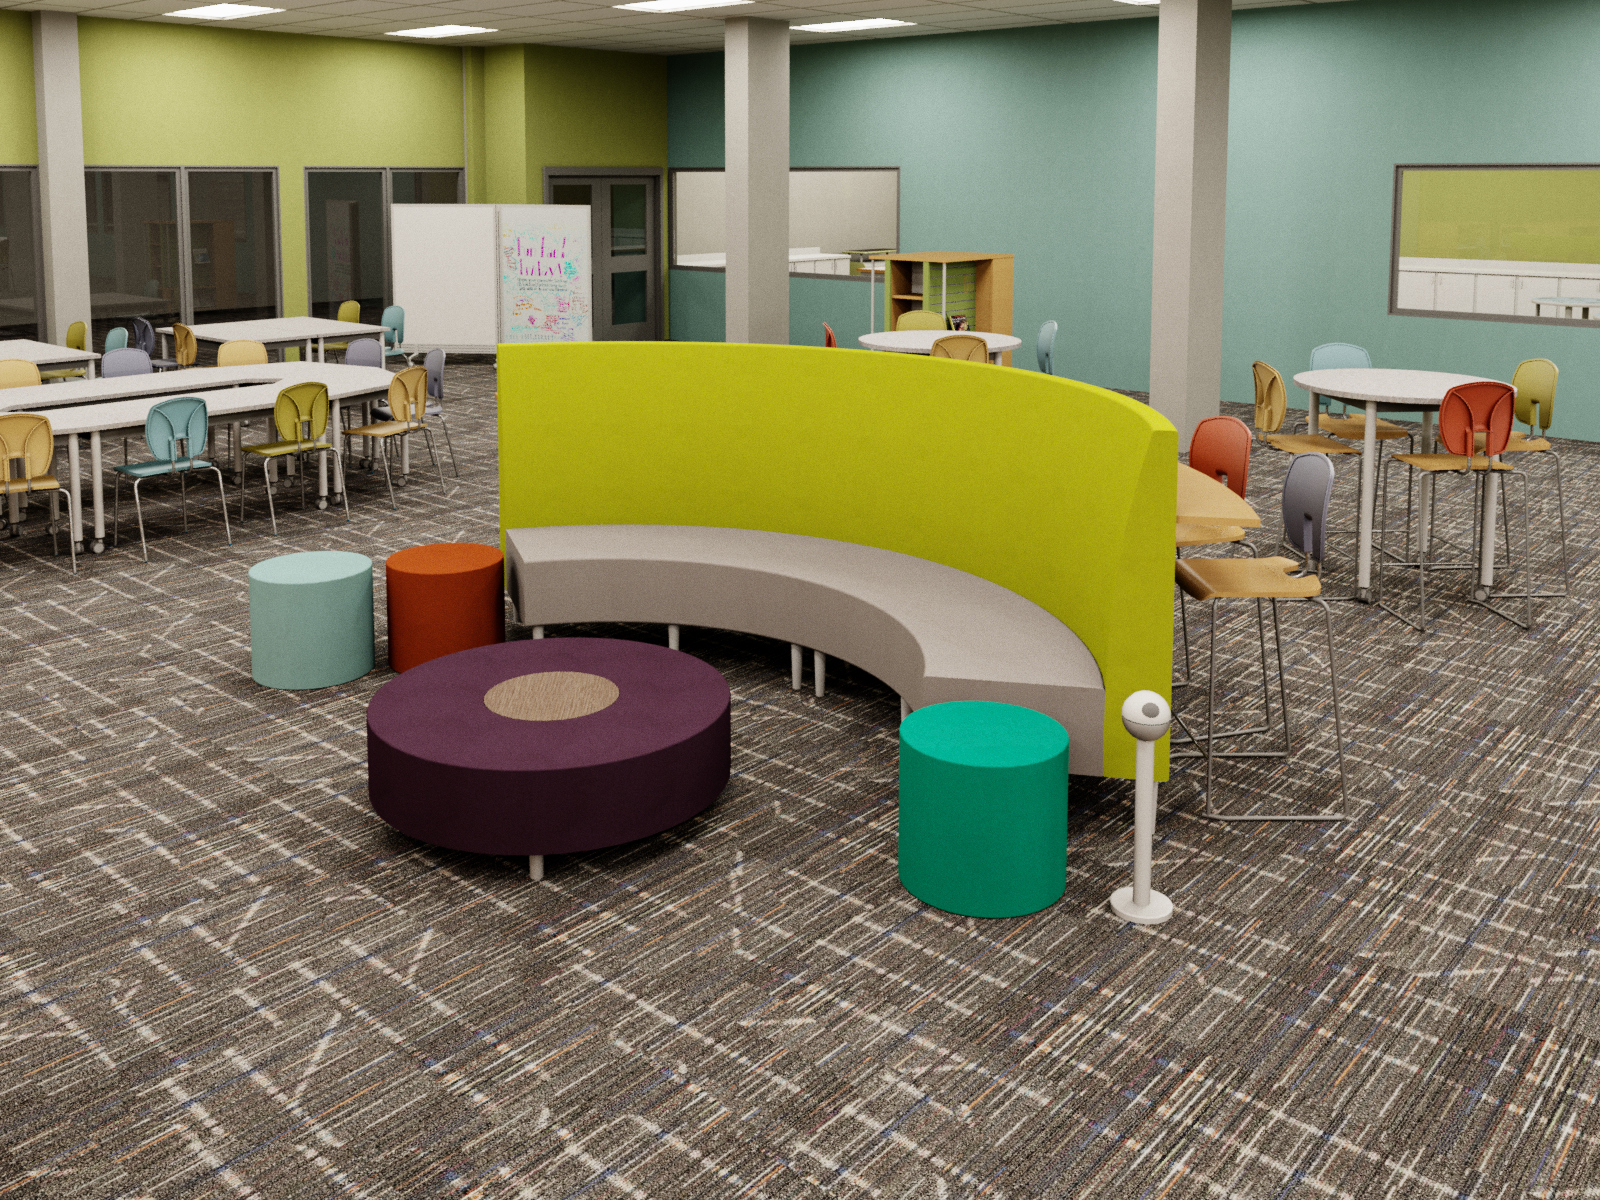 Commons learning environment